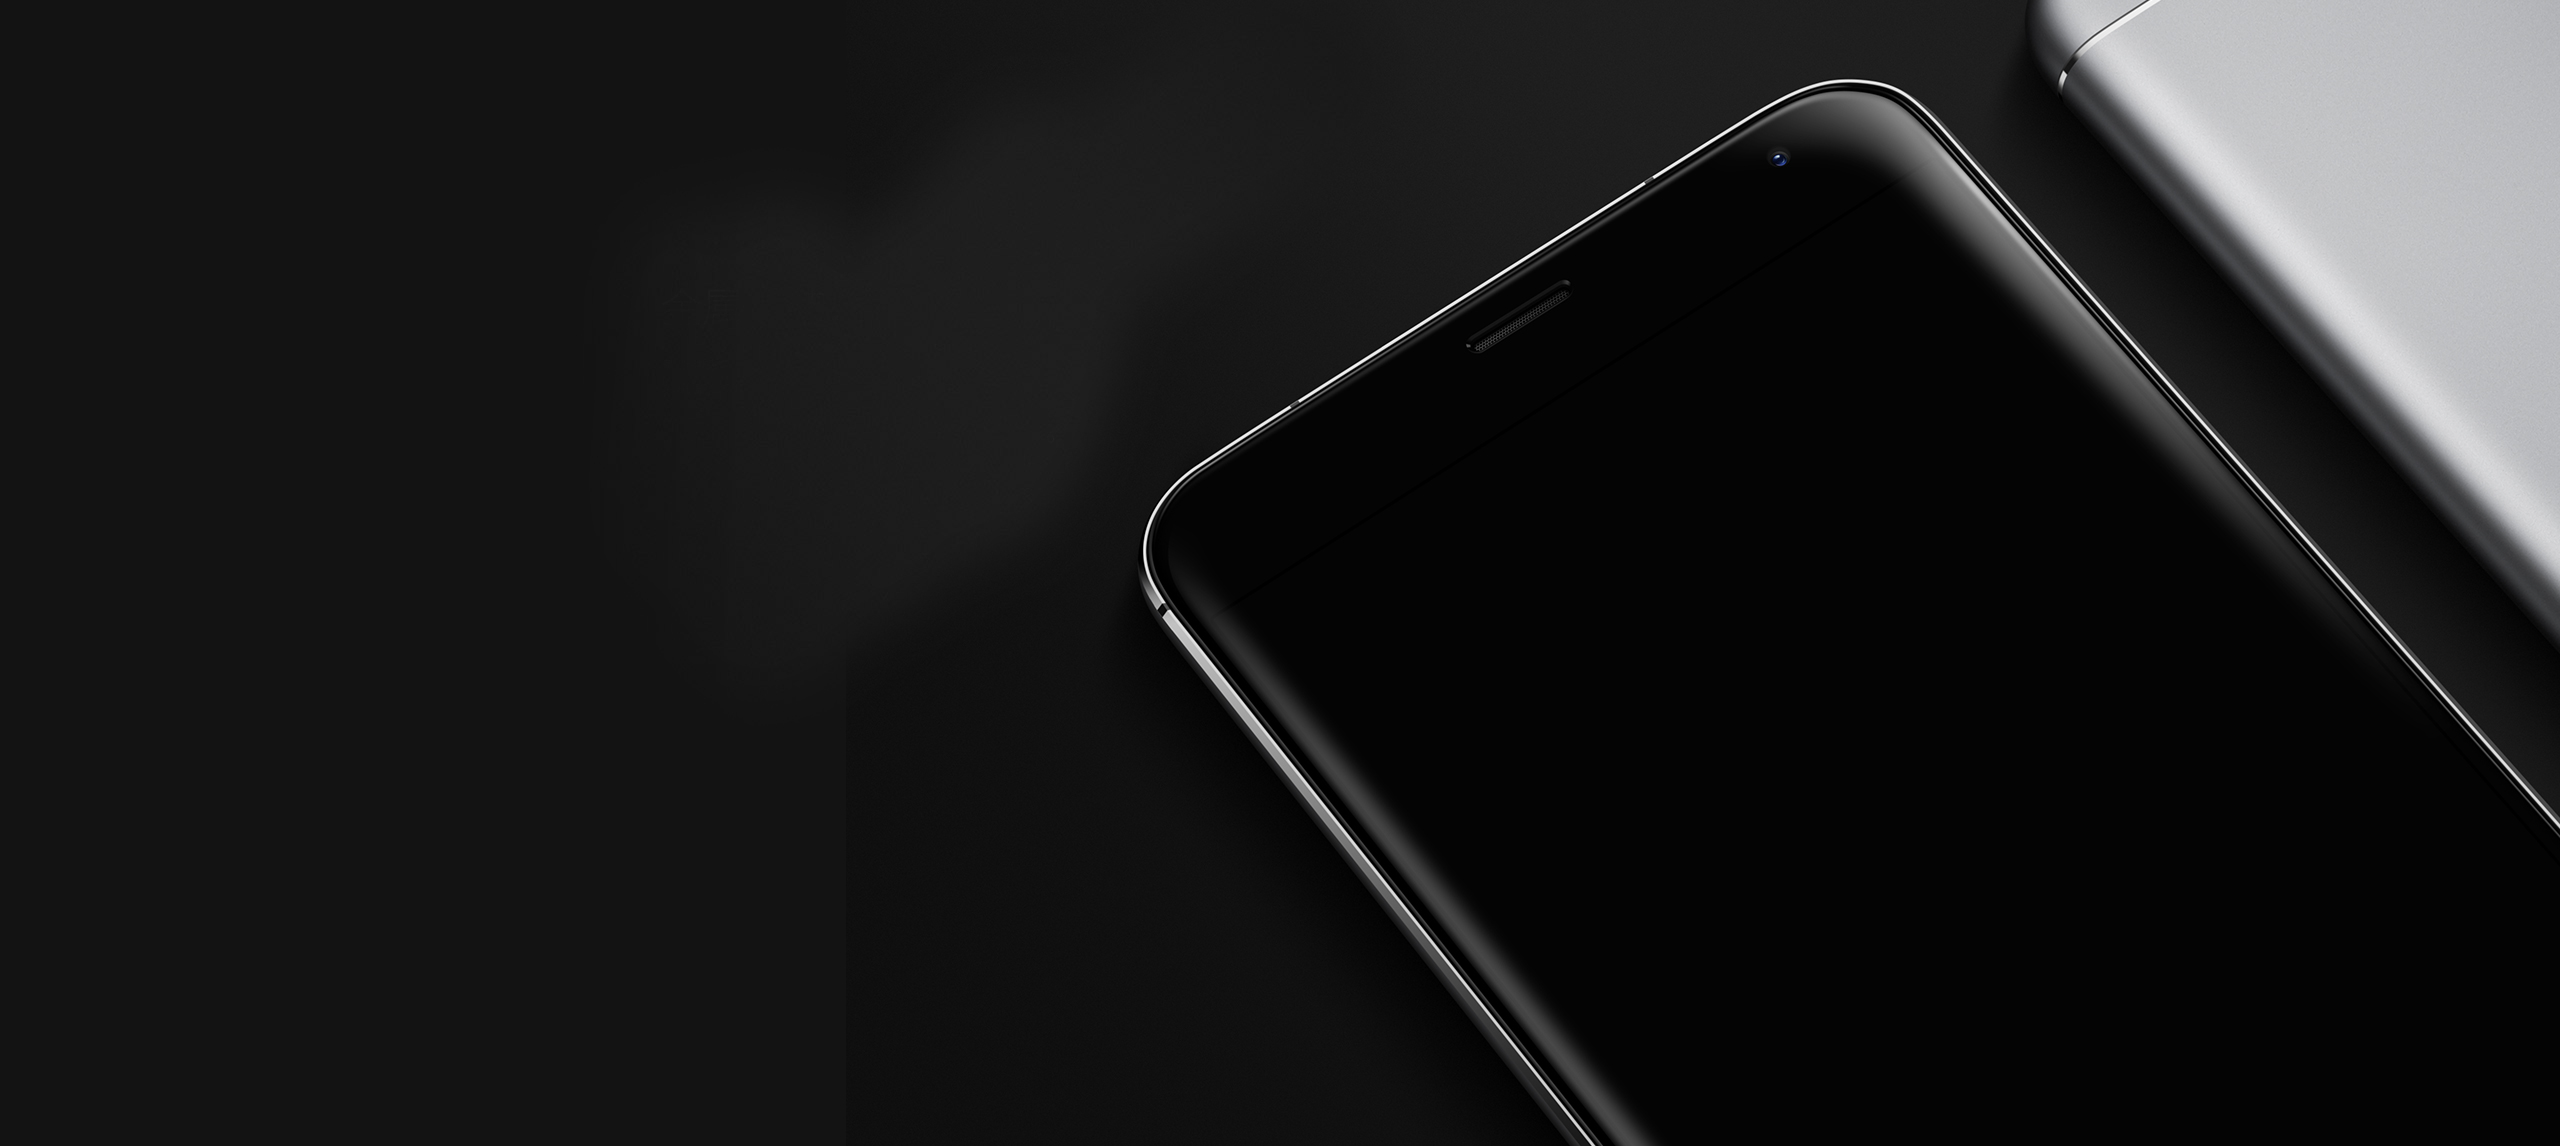 We might not see a Helio X20 version of Meizu PRO 5 anytime soon